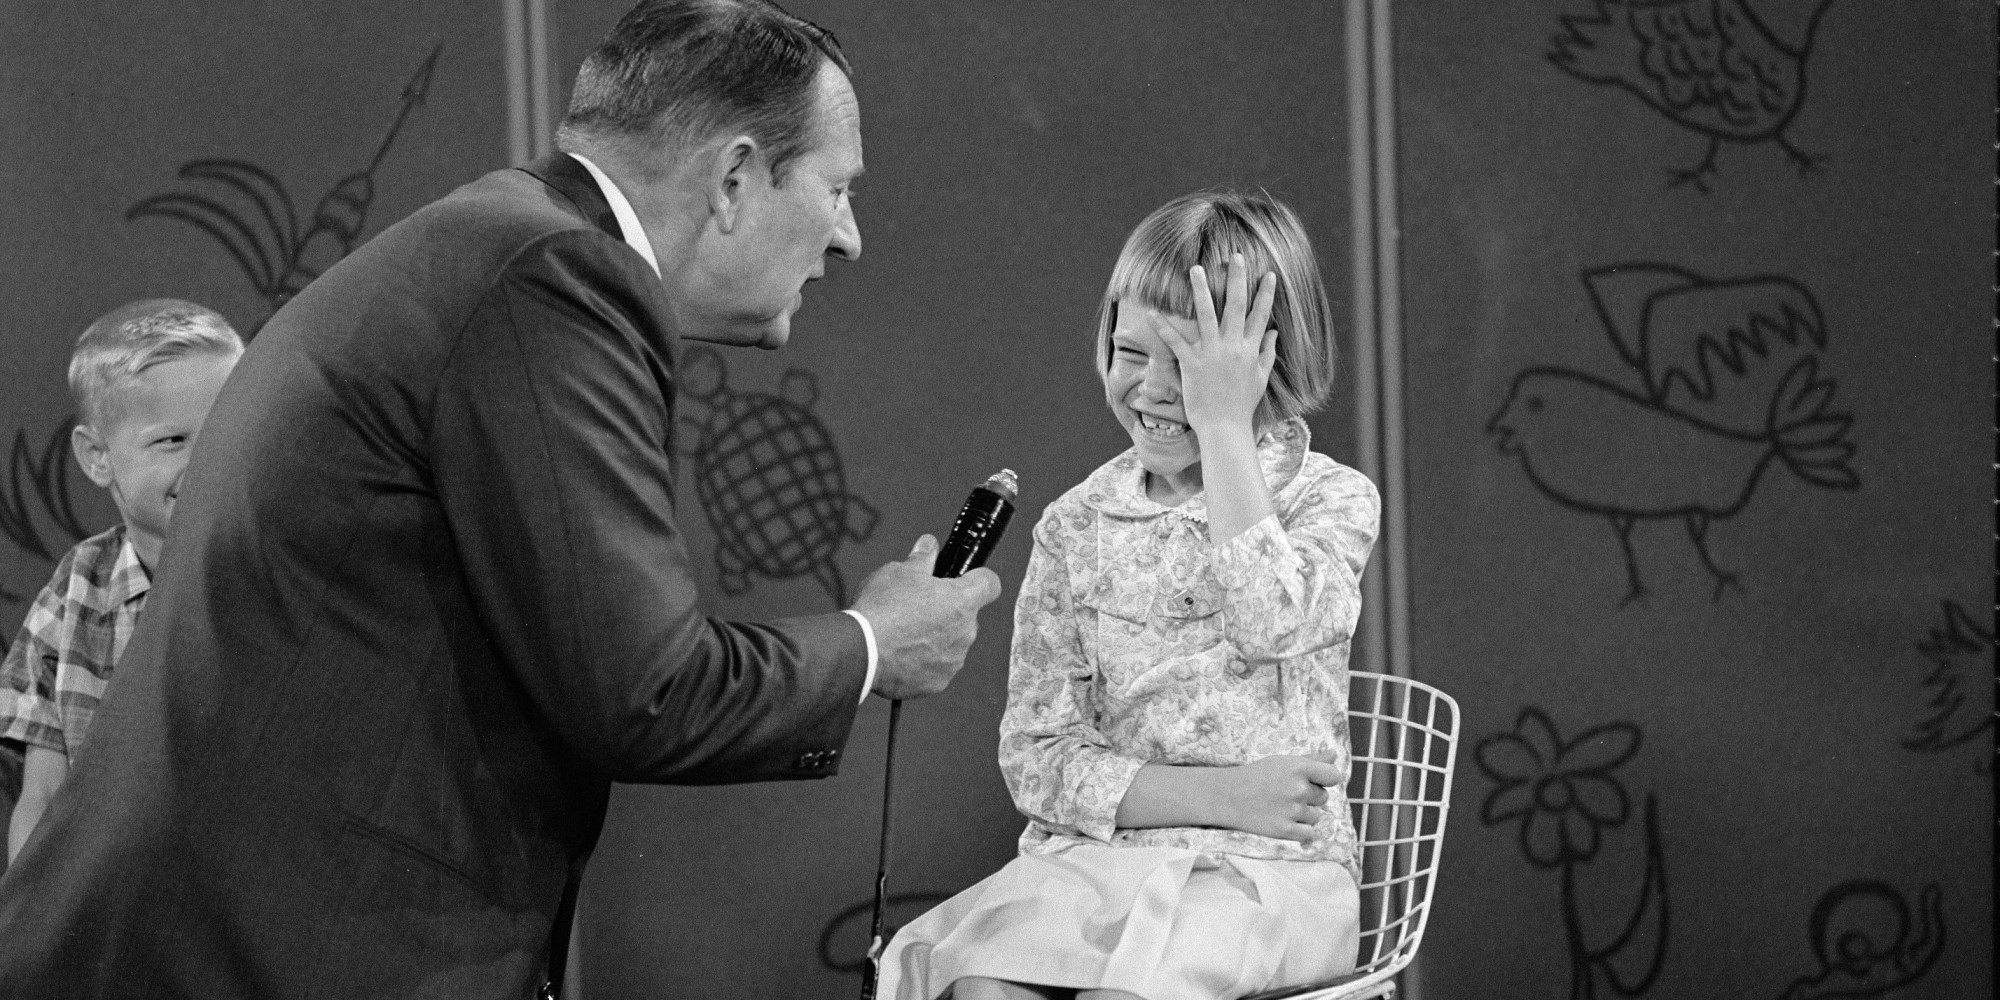 Canadian-born television host Art Linkletter (born Arthur Gordon Kelly) holds the microphone as he interviews an unidentified, laughing girl on an episode of the 'Kids Say the Darndest Things' segment of 'Art Linkletter's House Party,' April 23, 1965. (Photo by CBS Photo Archive/Getty Images)